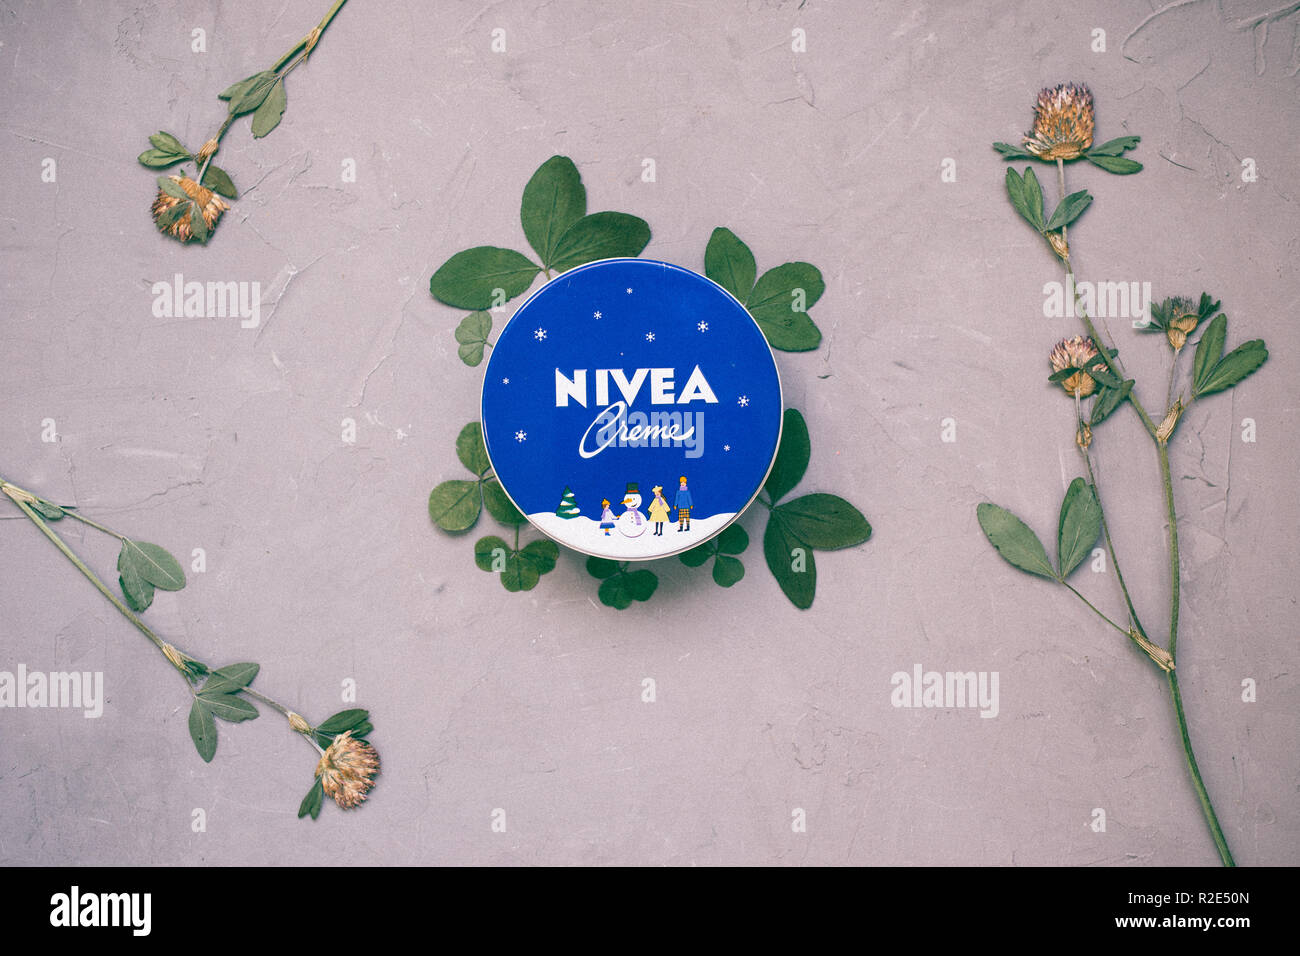 Moscow, Russia - 11 14 2018: top view cream nivea on gray background - Stock Image